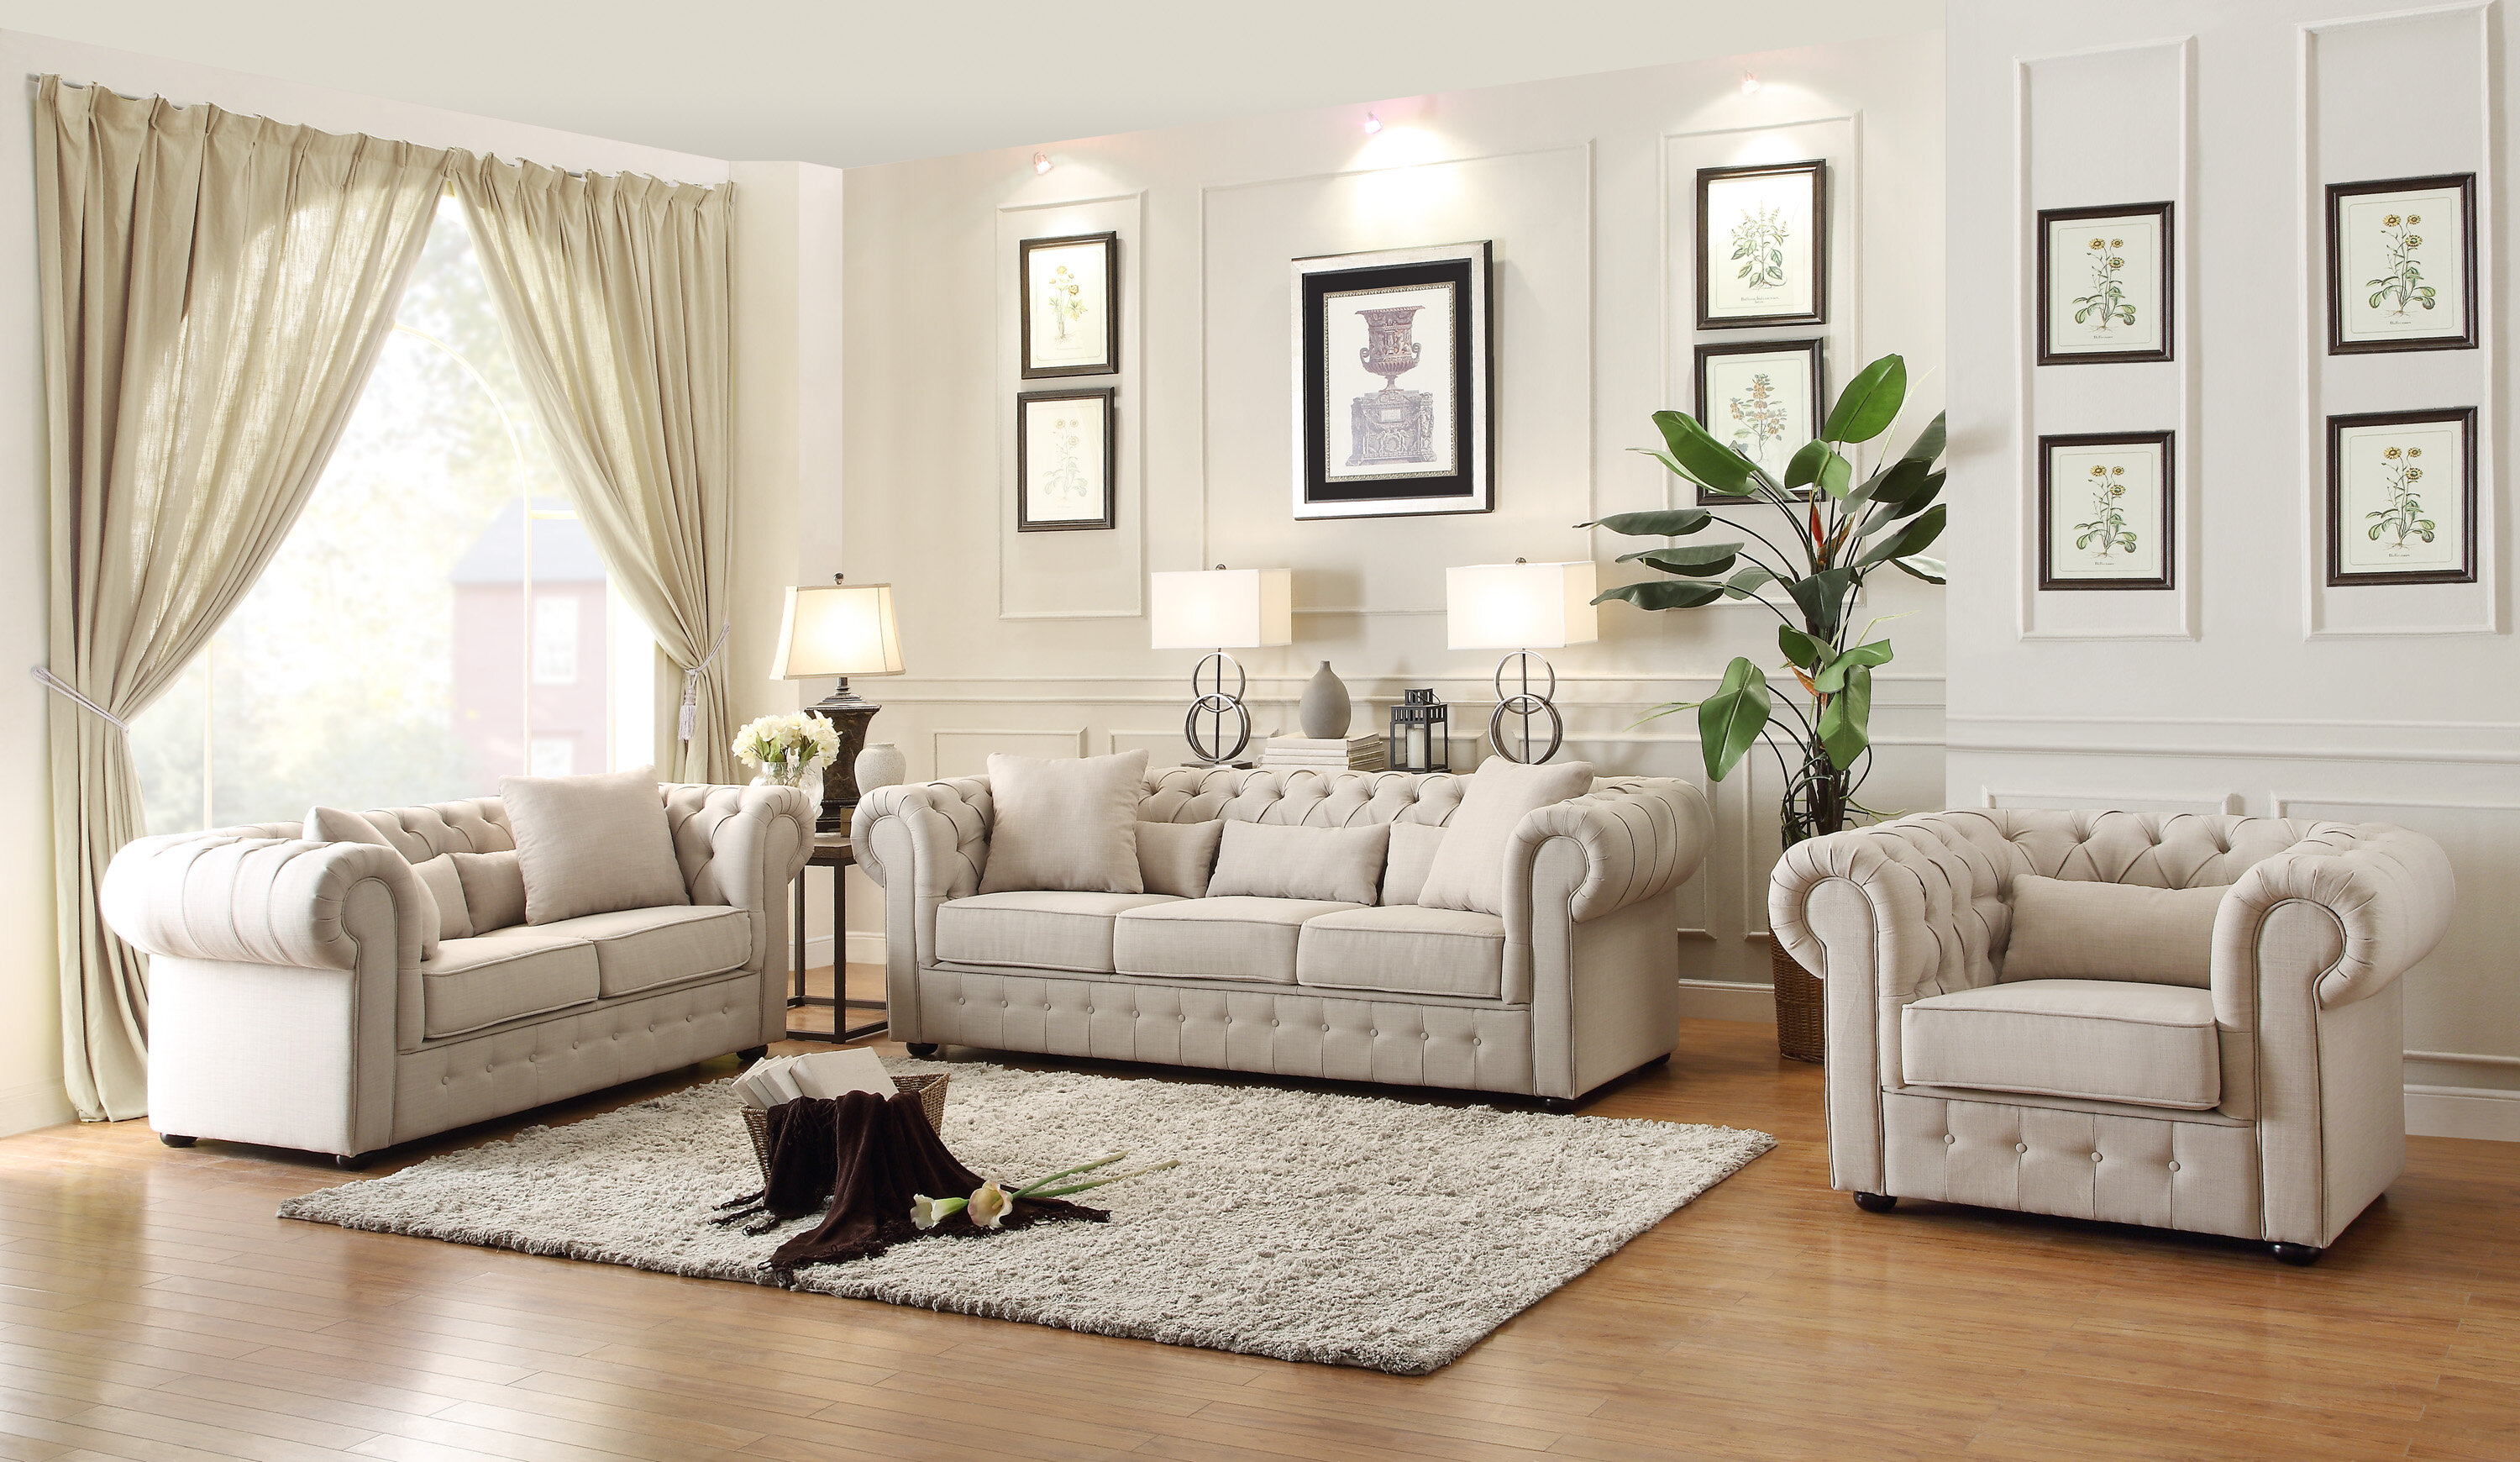 Darby Home Co Pearlie Configurable Living Room Set & Reviews | Wayfair